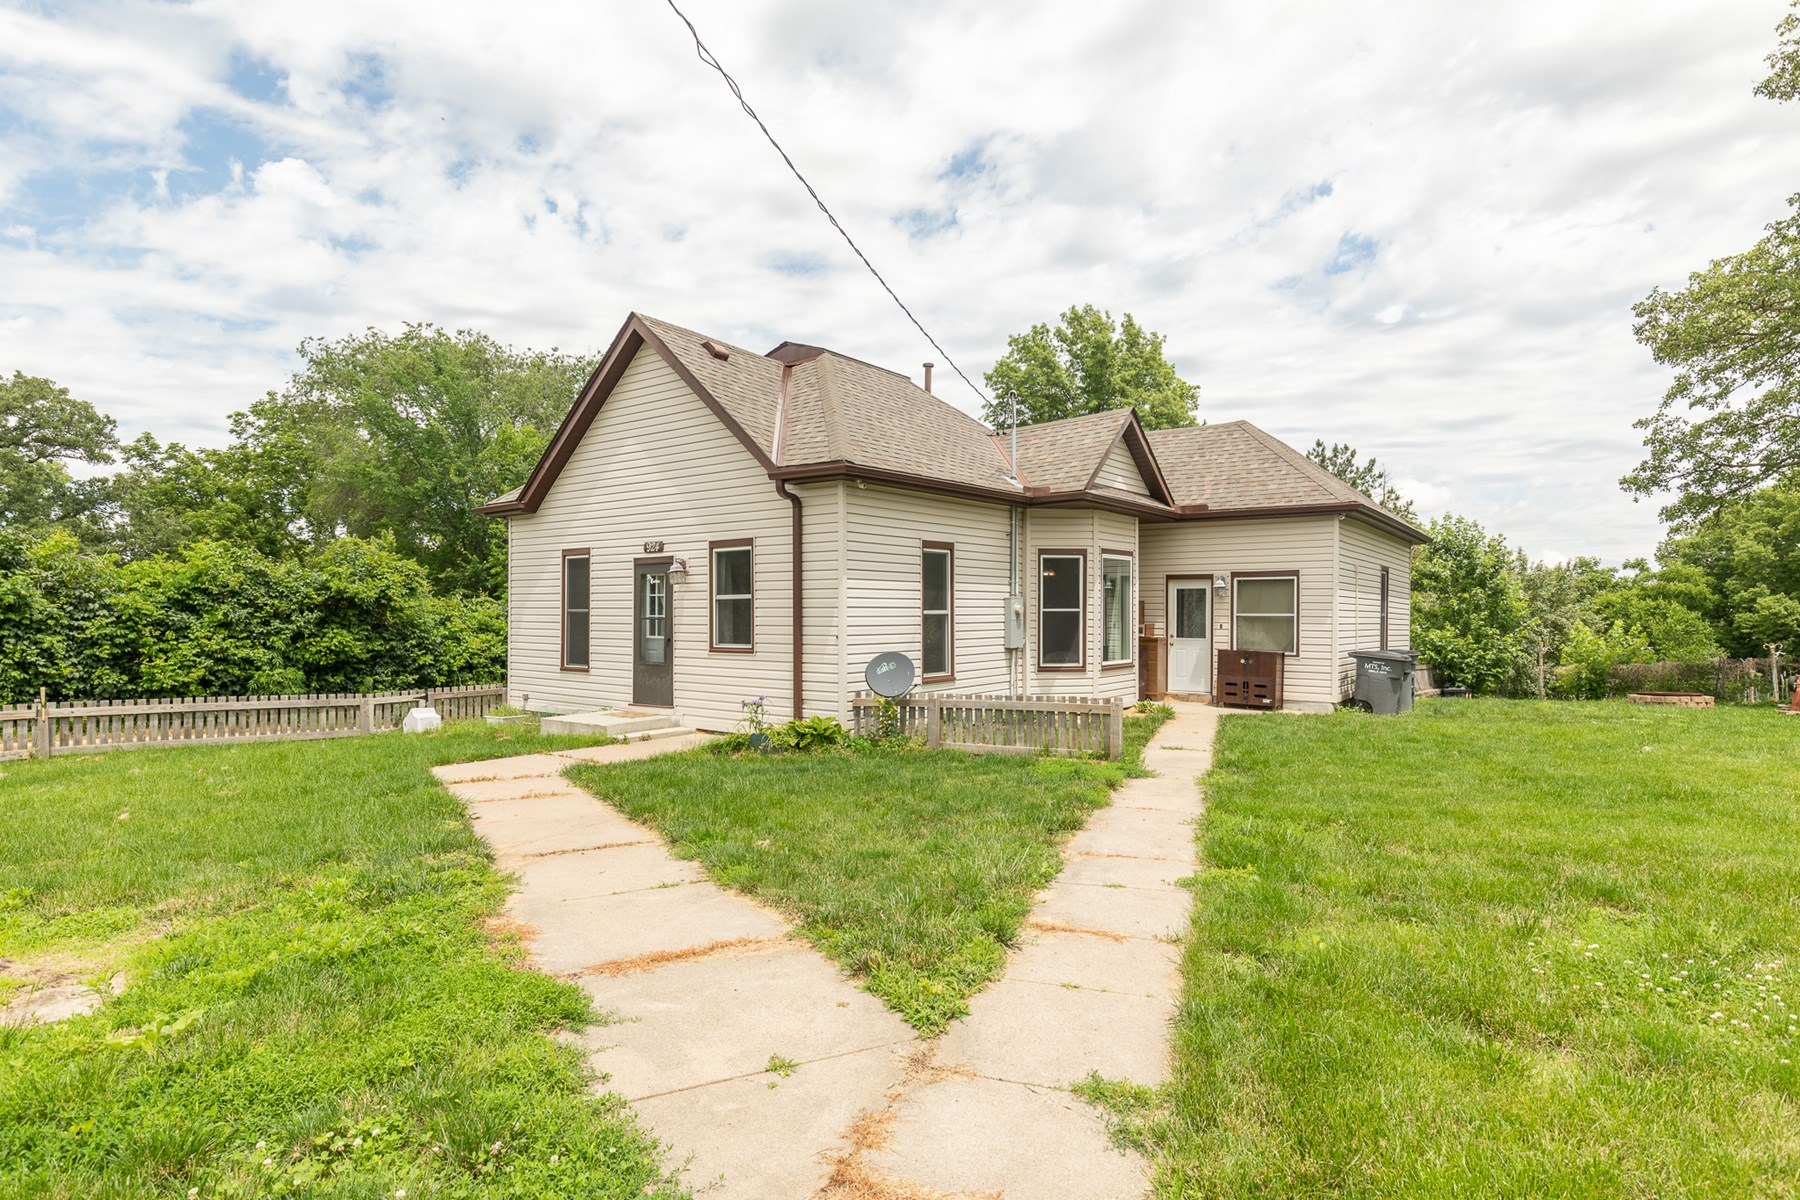 Home In Oakland, Iowa for sale